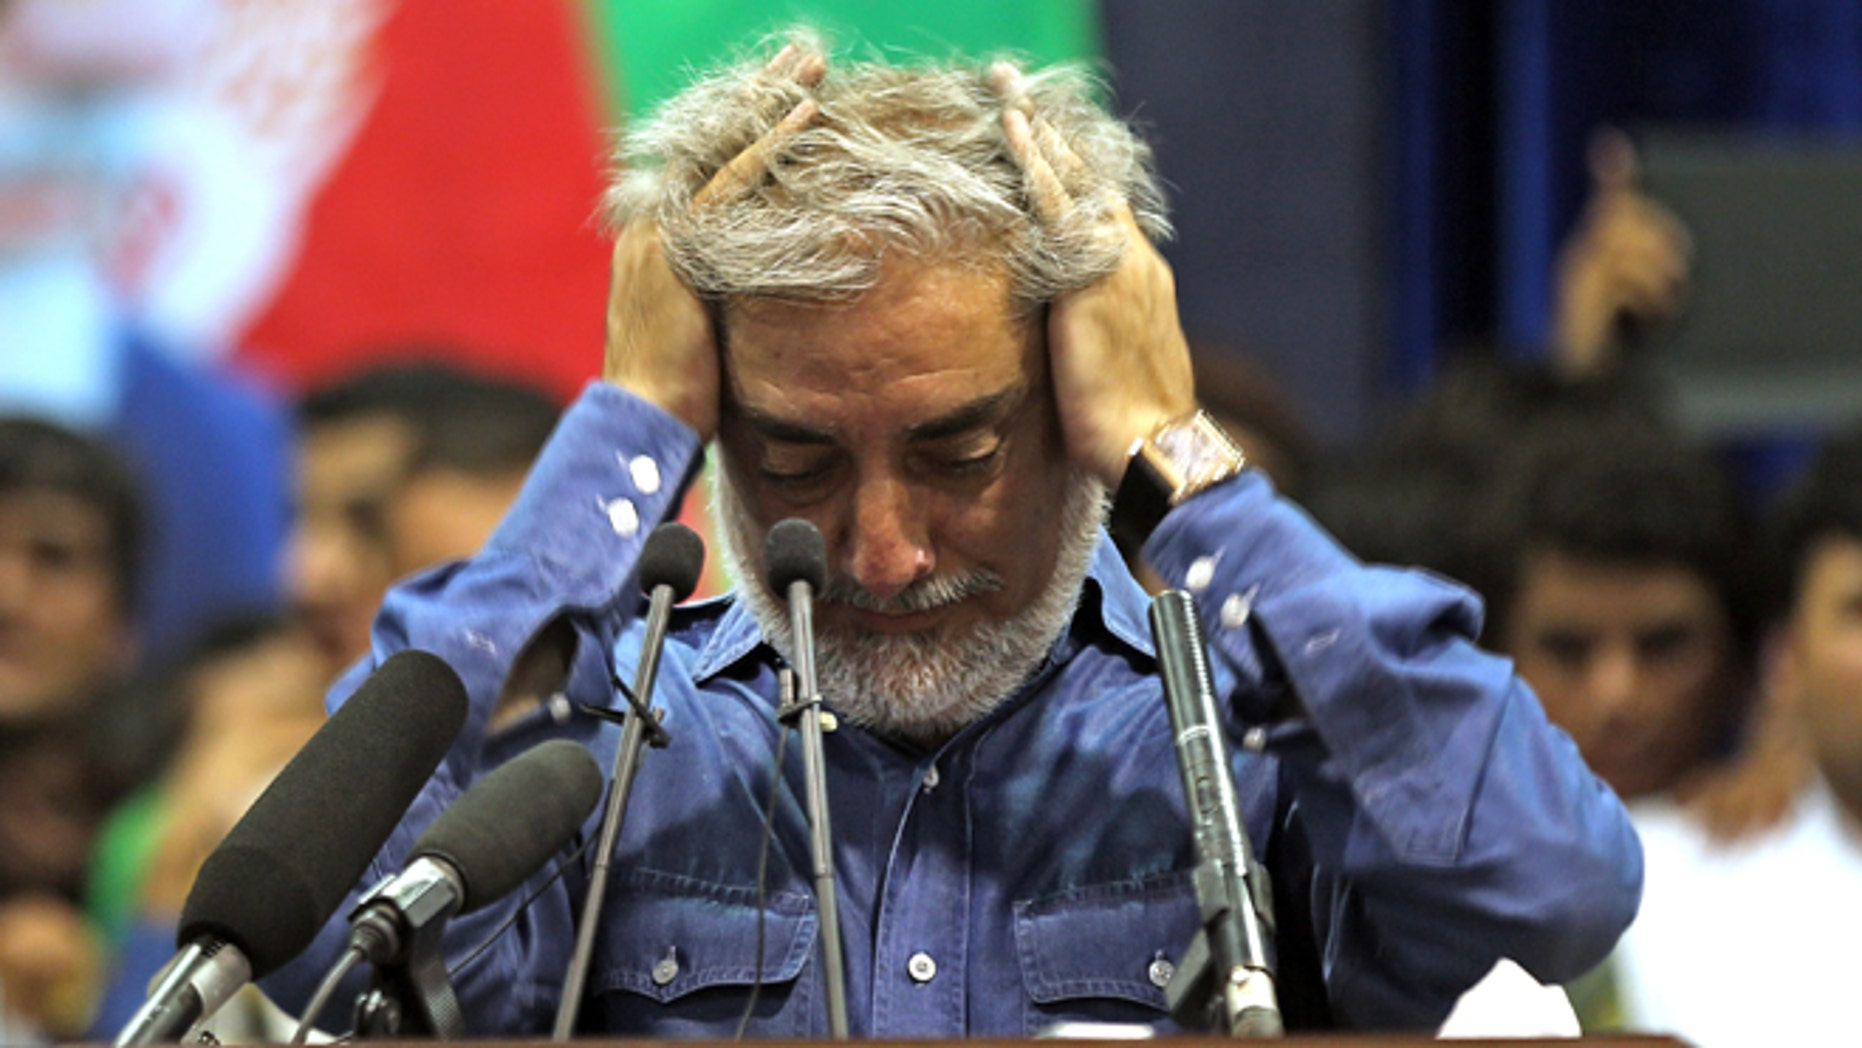 July 8, 2014: Afghan presidential candidate Abdullah Abdullah runs his hands through his hair as he pauses in addressing his supporters in Kabul, Afghanistan. (AP)